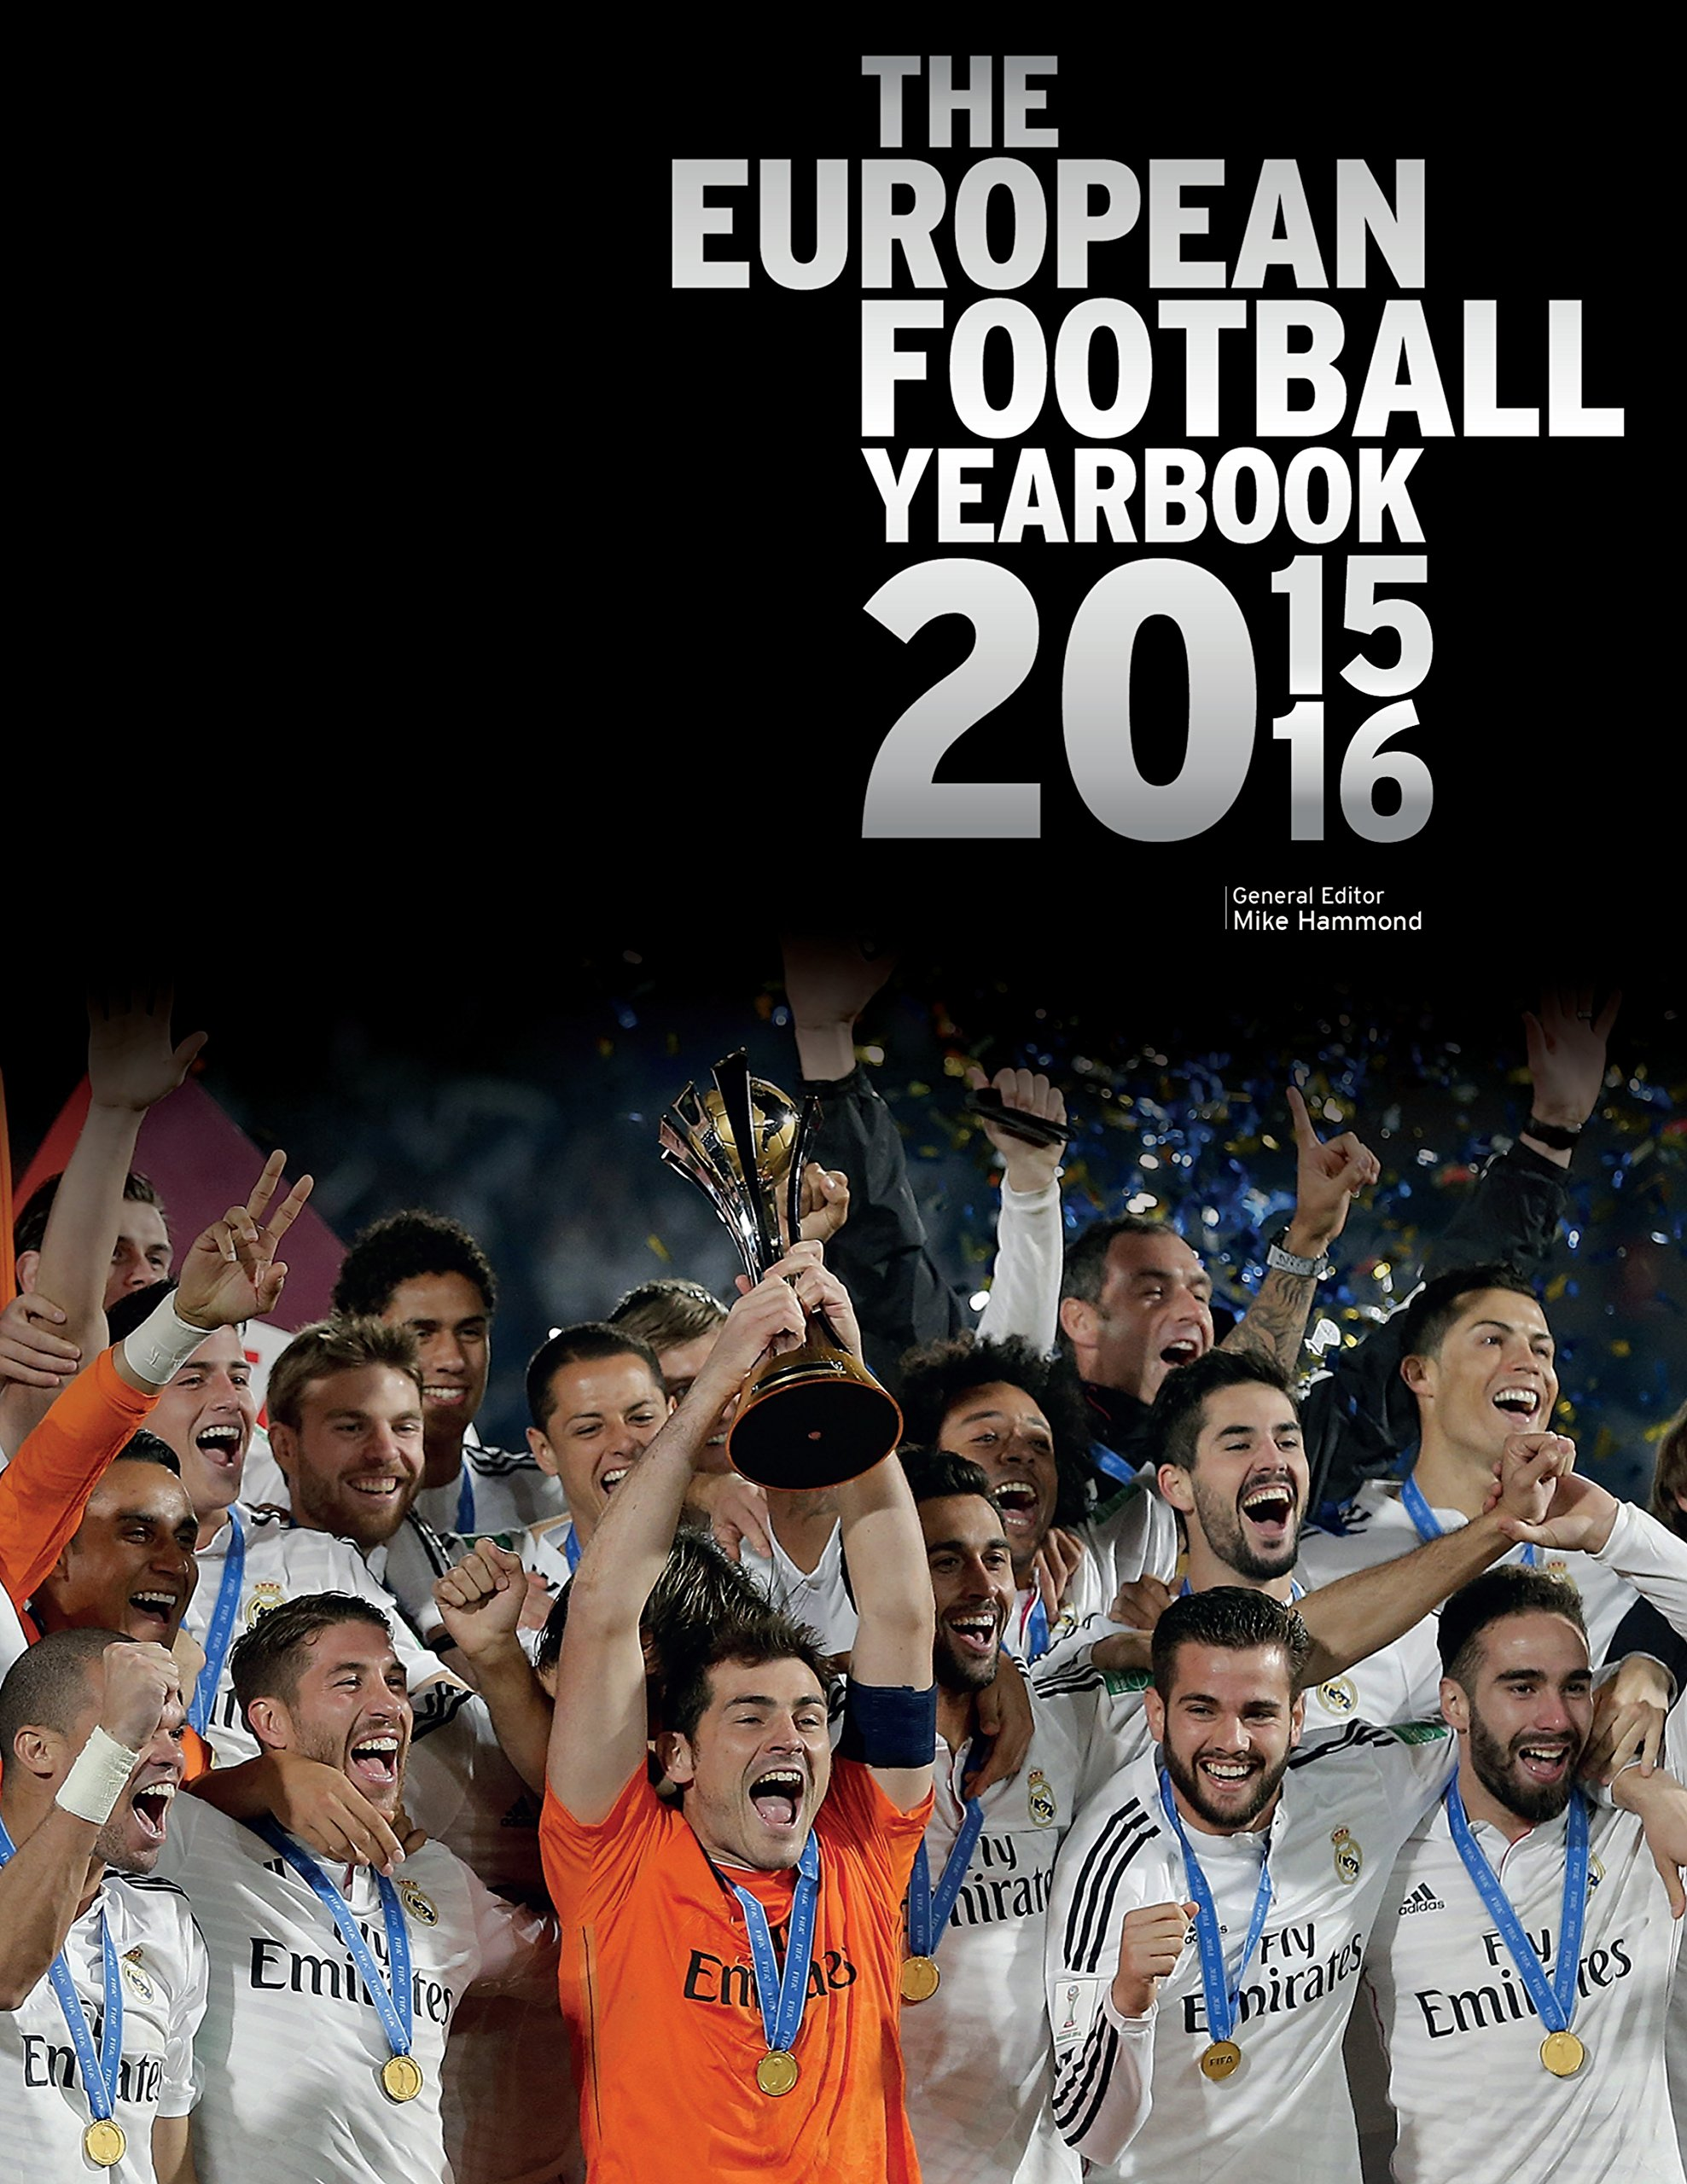 uefa-european-football-yearbook-15-16